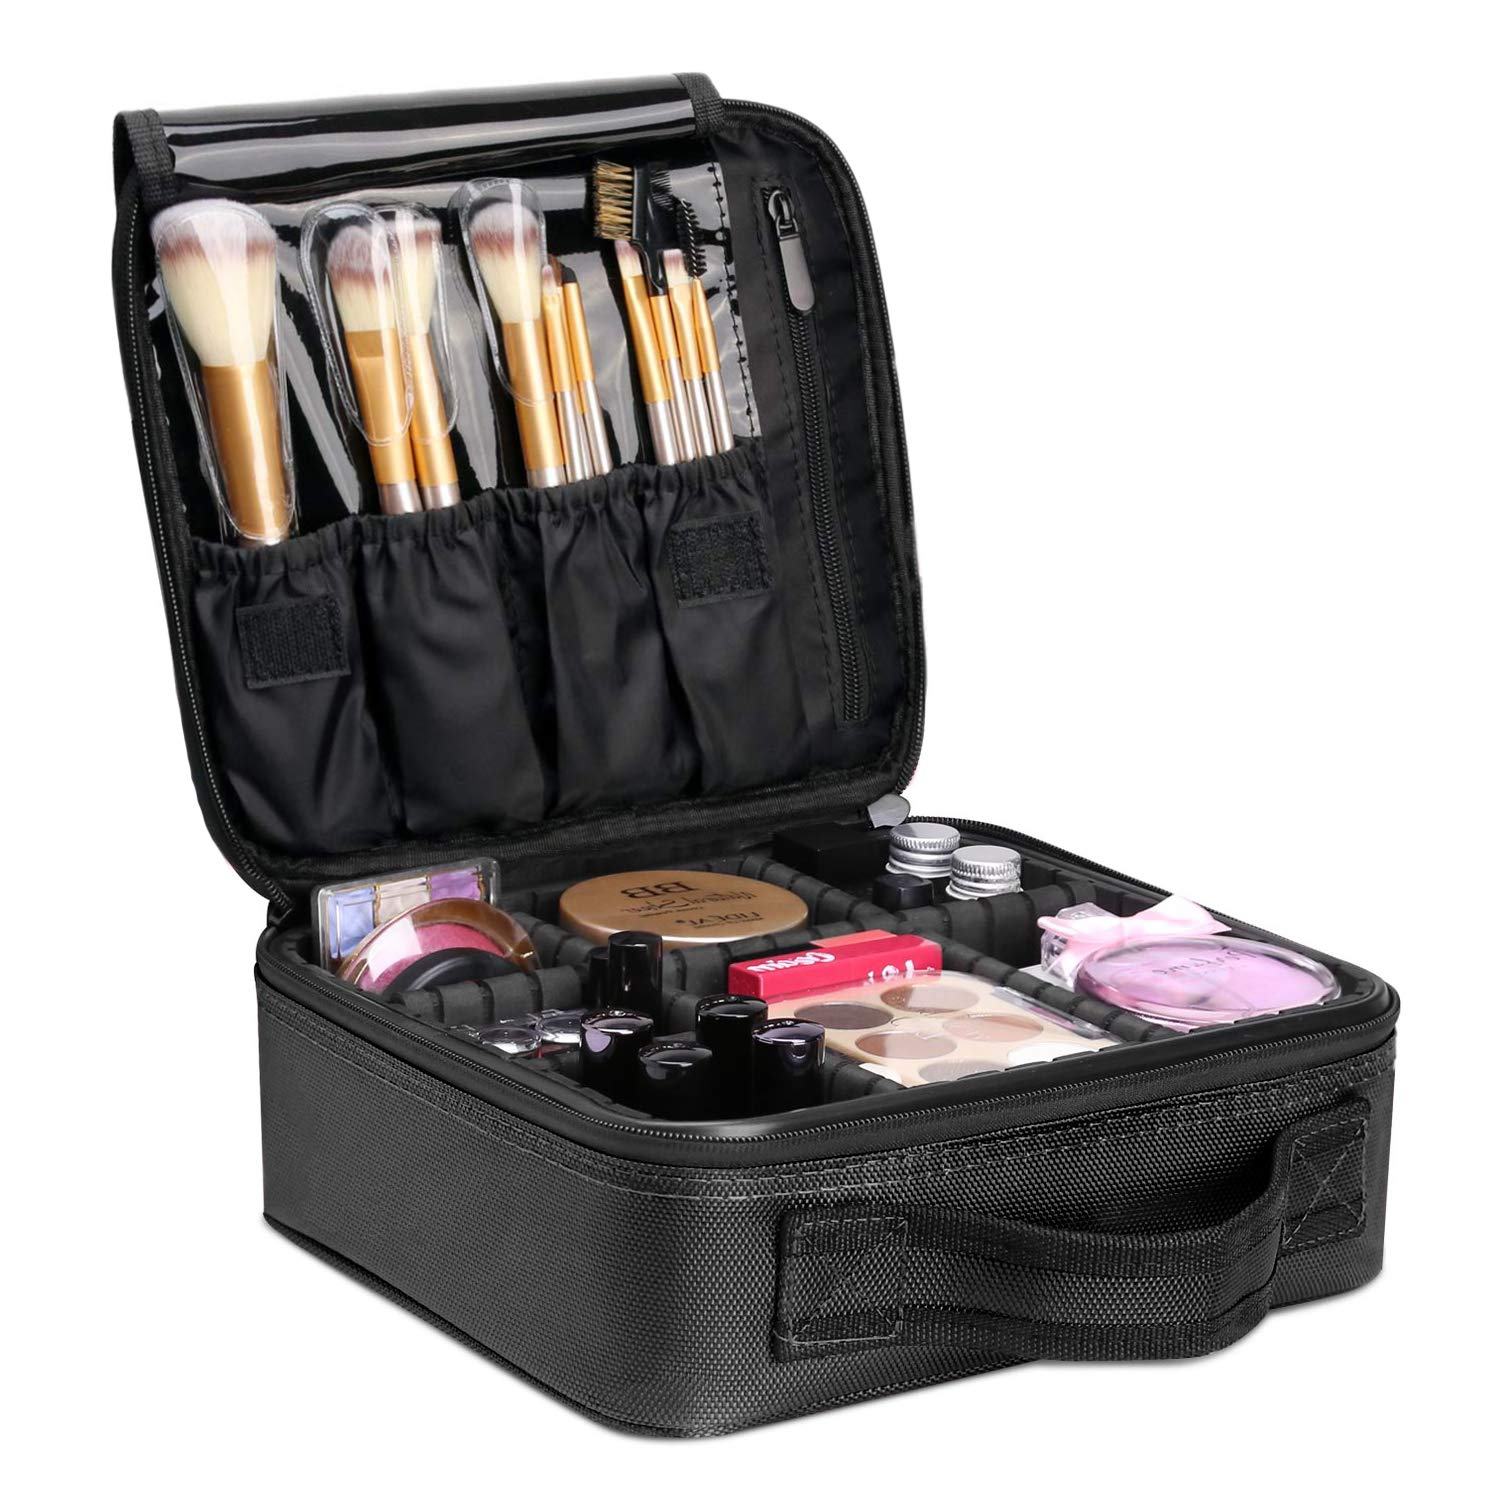 YZEECOL Travel Makeup Case Storage Bag Cosmetic Bag Train Organizer Portable Case Mini Black